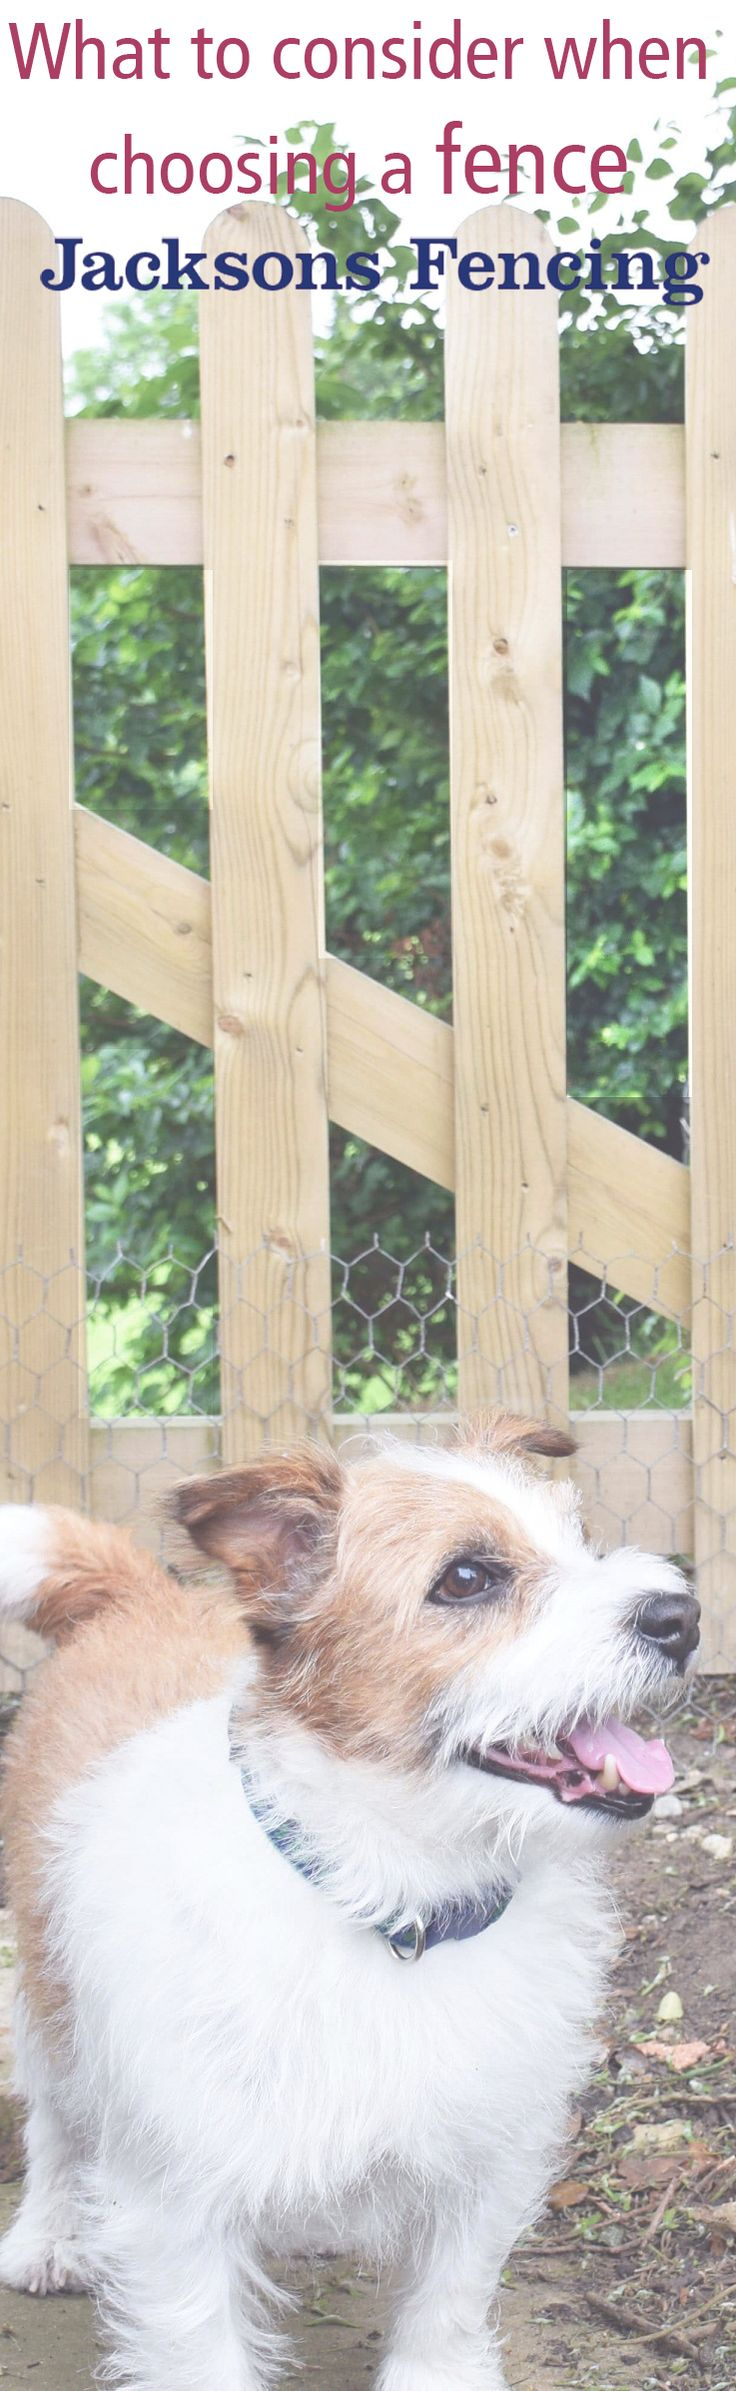 Vegetable garden plans for beginners ayanahouse - What To Consider When Choosing A Garden Fence It S Always Best To Plan Before Choosing A Garden Fence If You Have Pets Such As Dogs You May Need A Fence